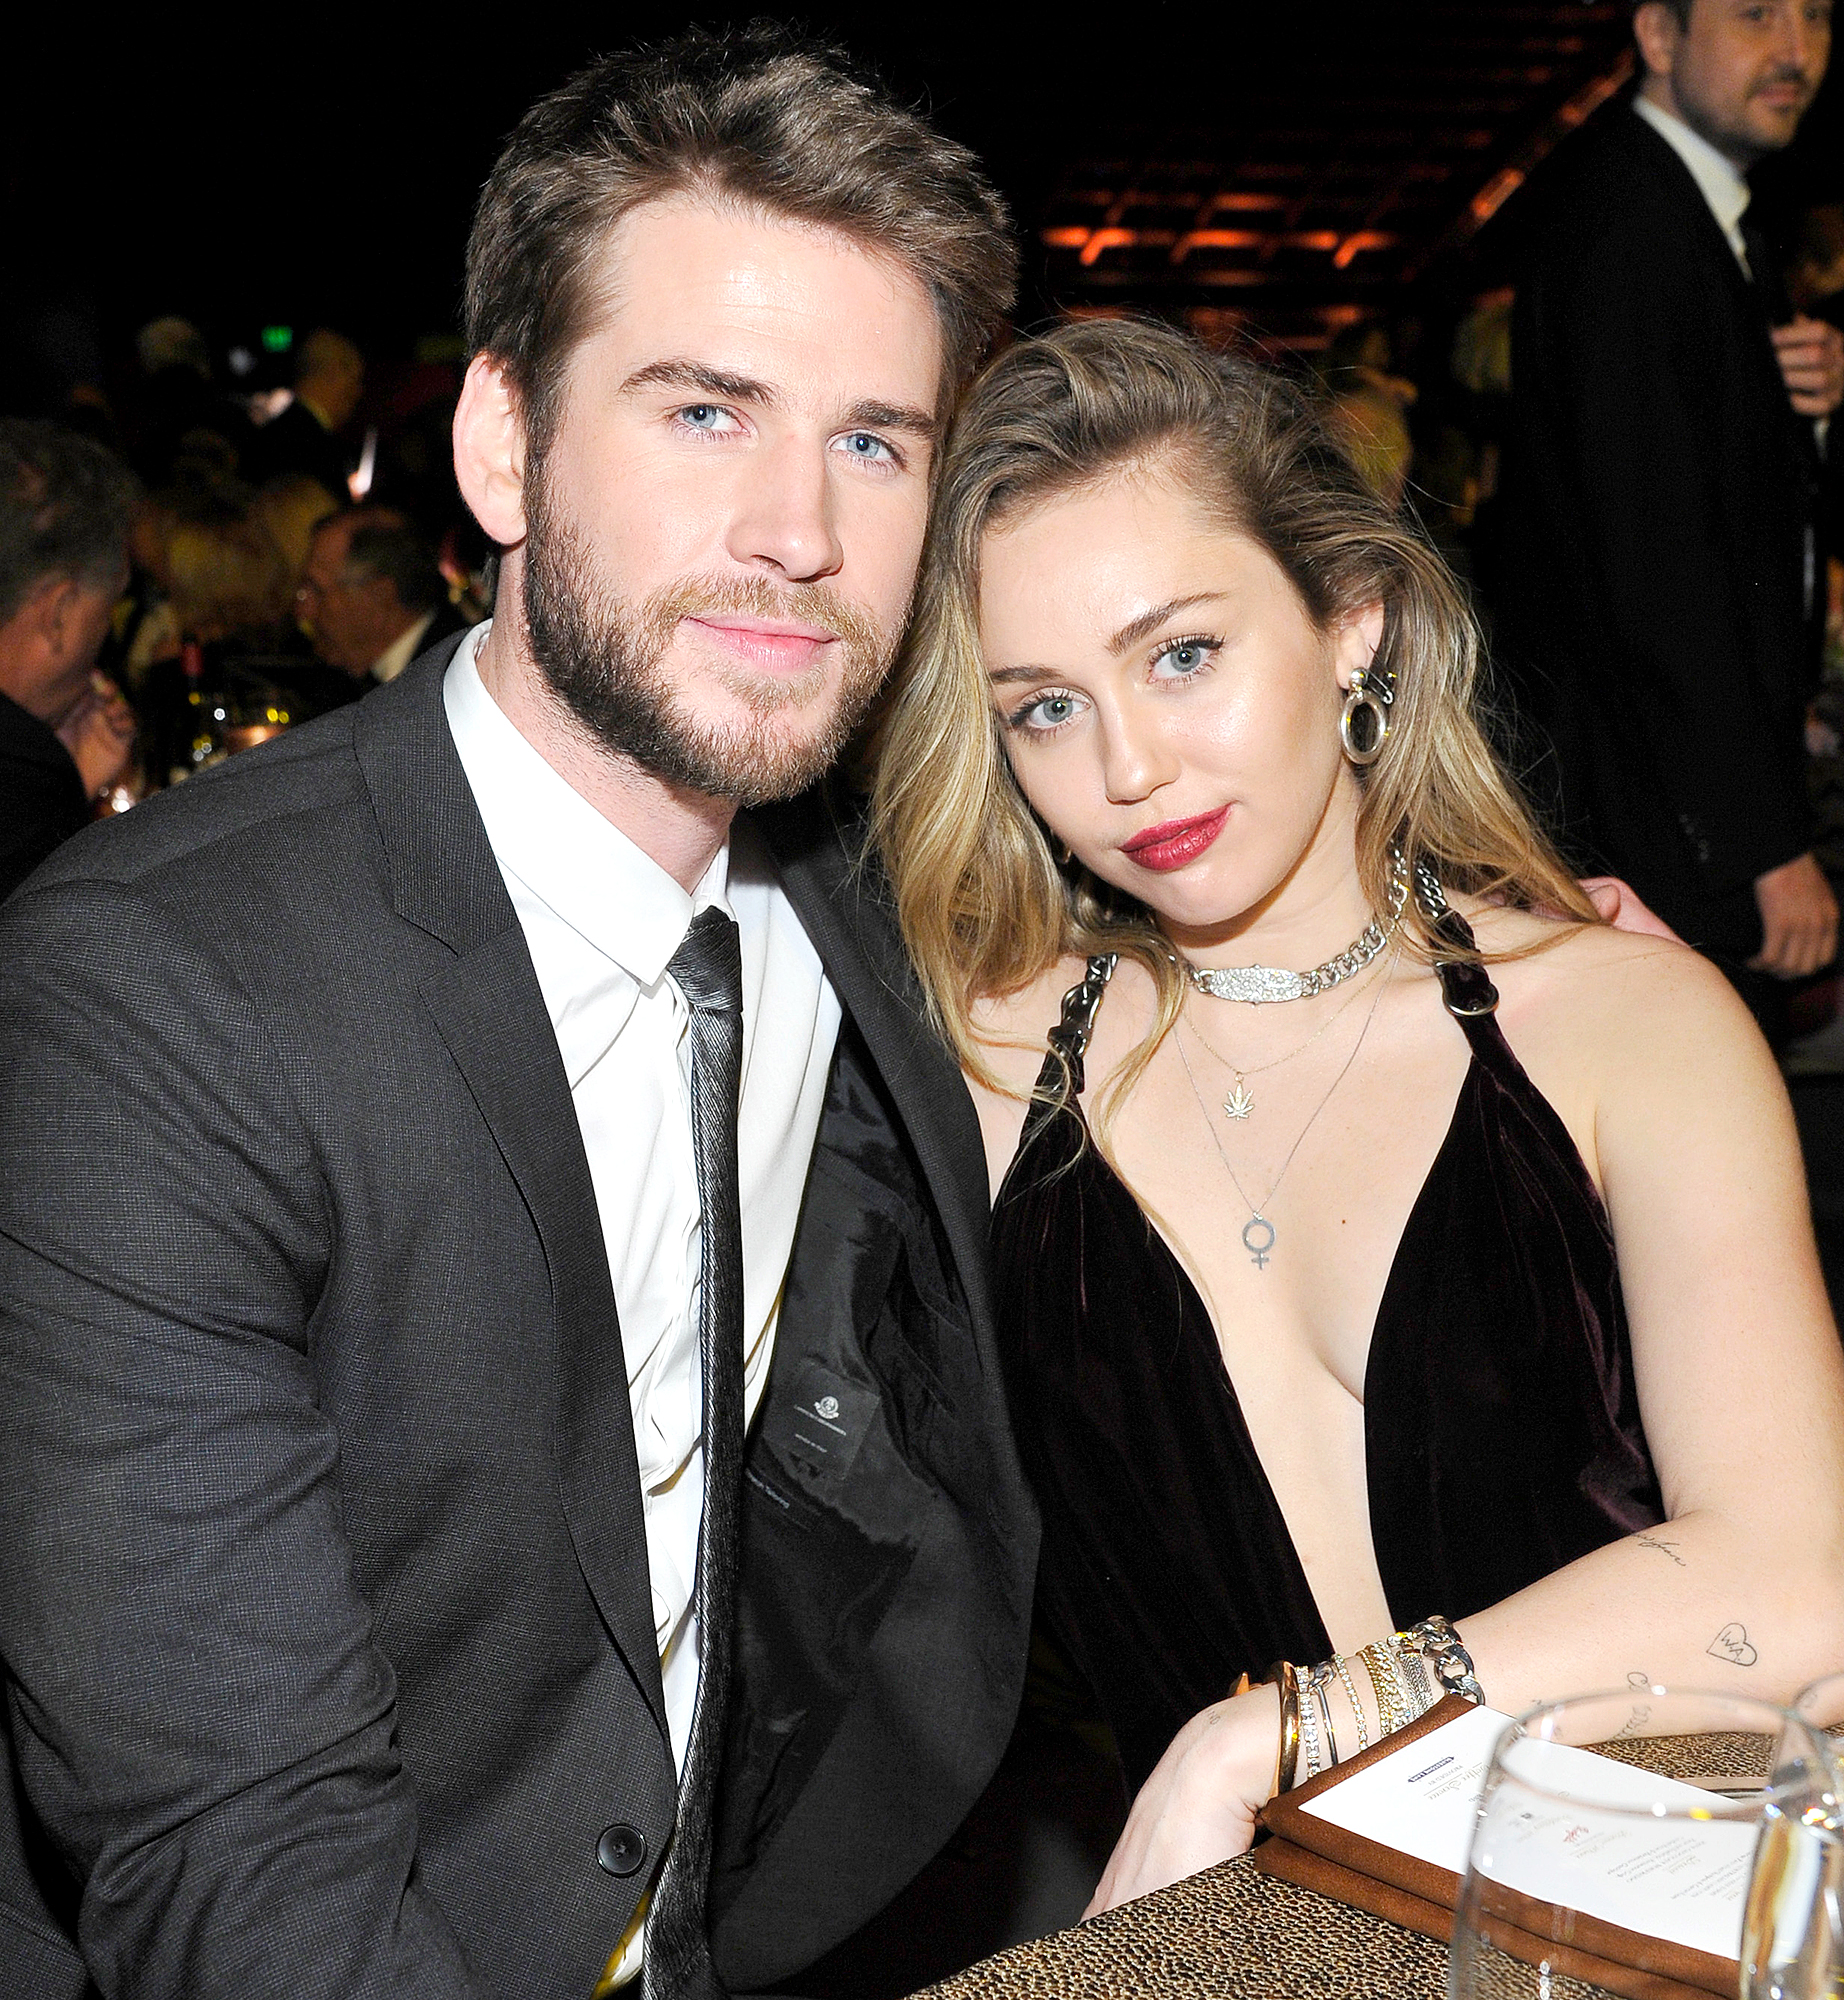 """Liam-Hemsworth-and-Miley-Cyrus-attend-the-2019-G'Day-USA-Gala - Cyrus and Hemsworth made their first public appearance as husband and wife at the G'Day USA gala in Culver City, California, in January 2019. The Hunger Games star joked on stage that he is """"a big, grown adult now"""" before thanking his """"beautiful wife."""""""